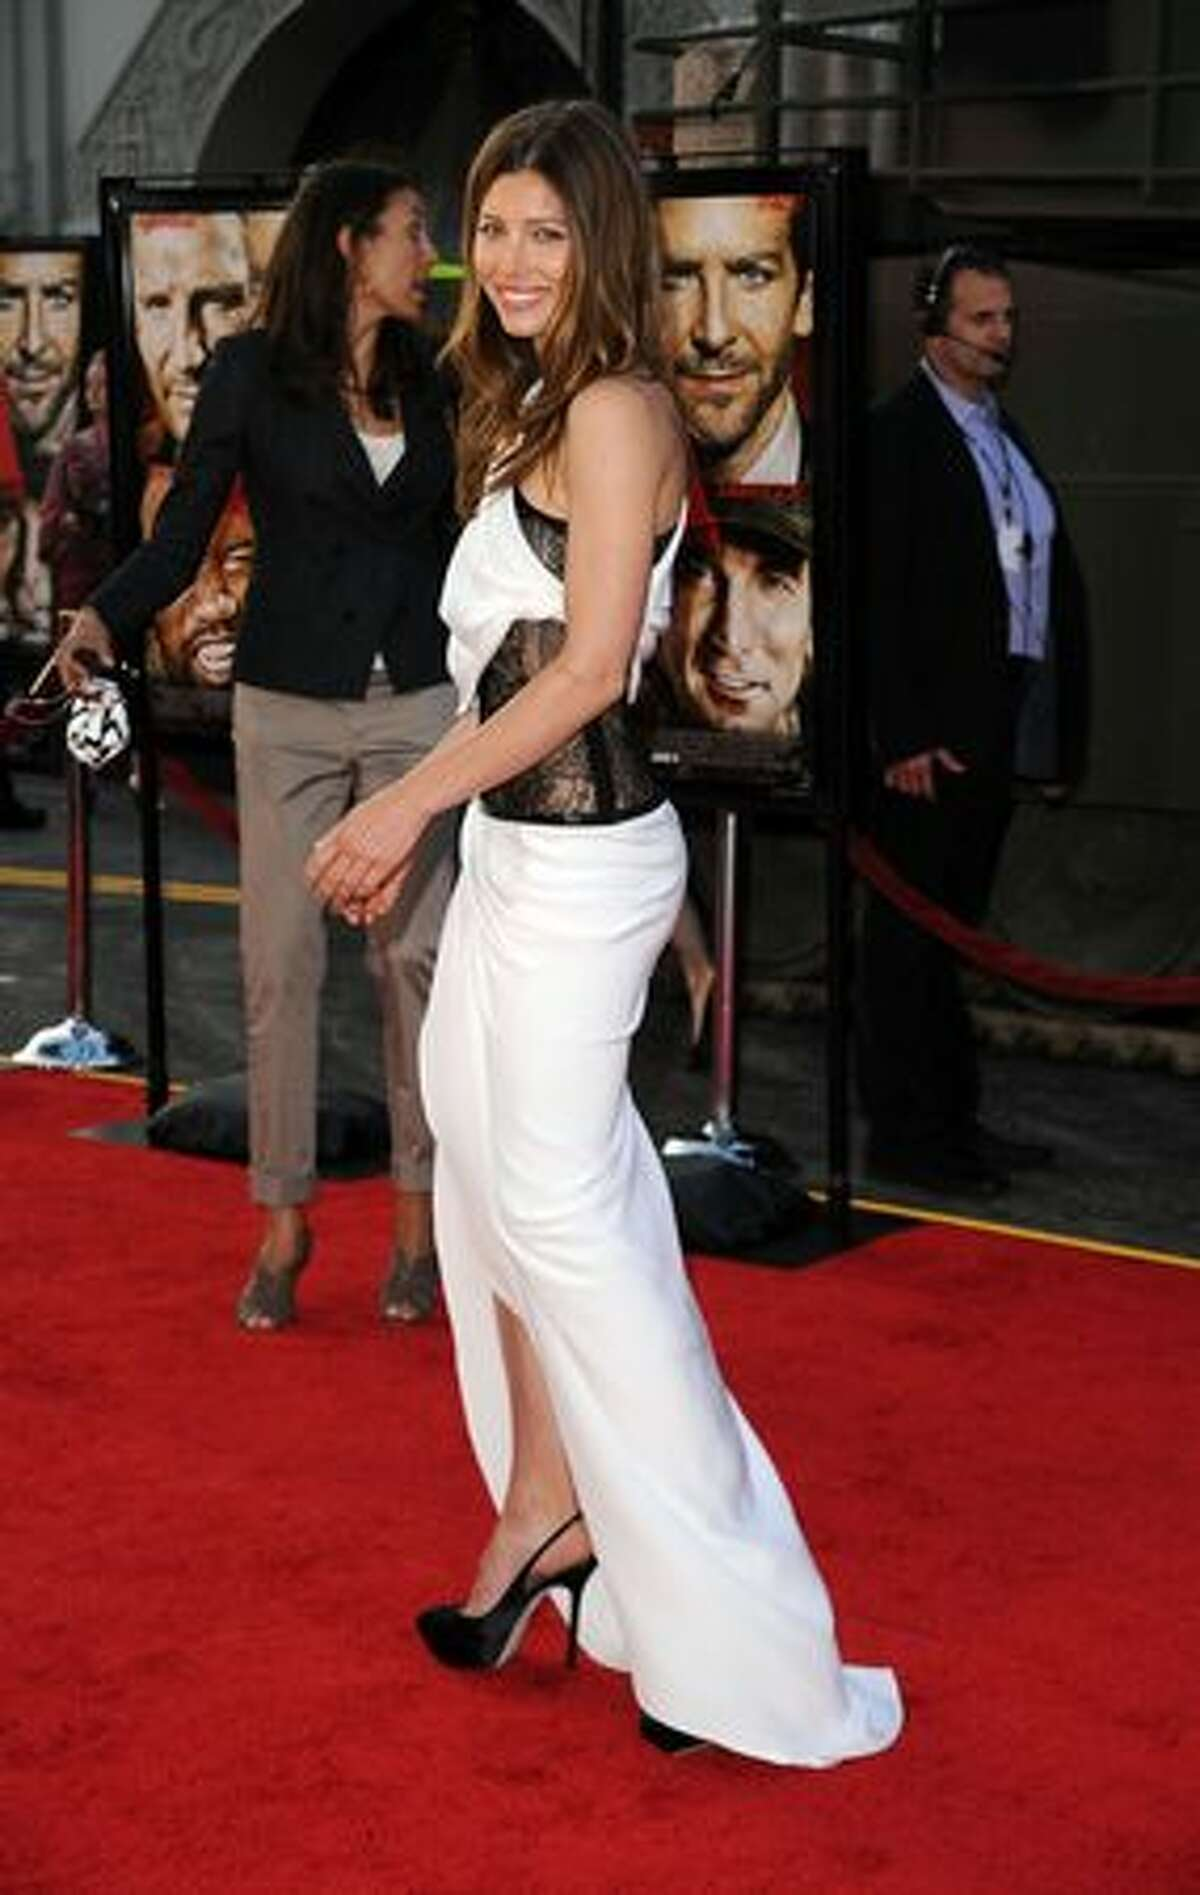 Actress Jessica Biel arrives at the premiere of 20th Century Fox's